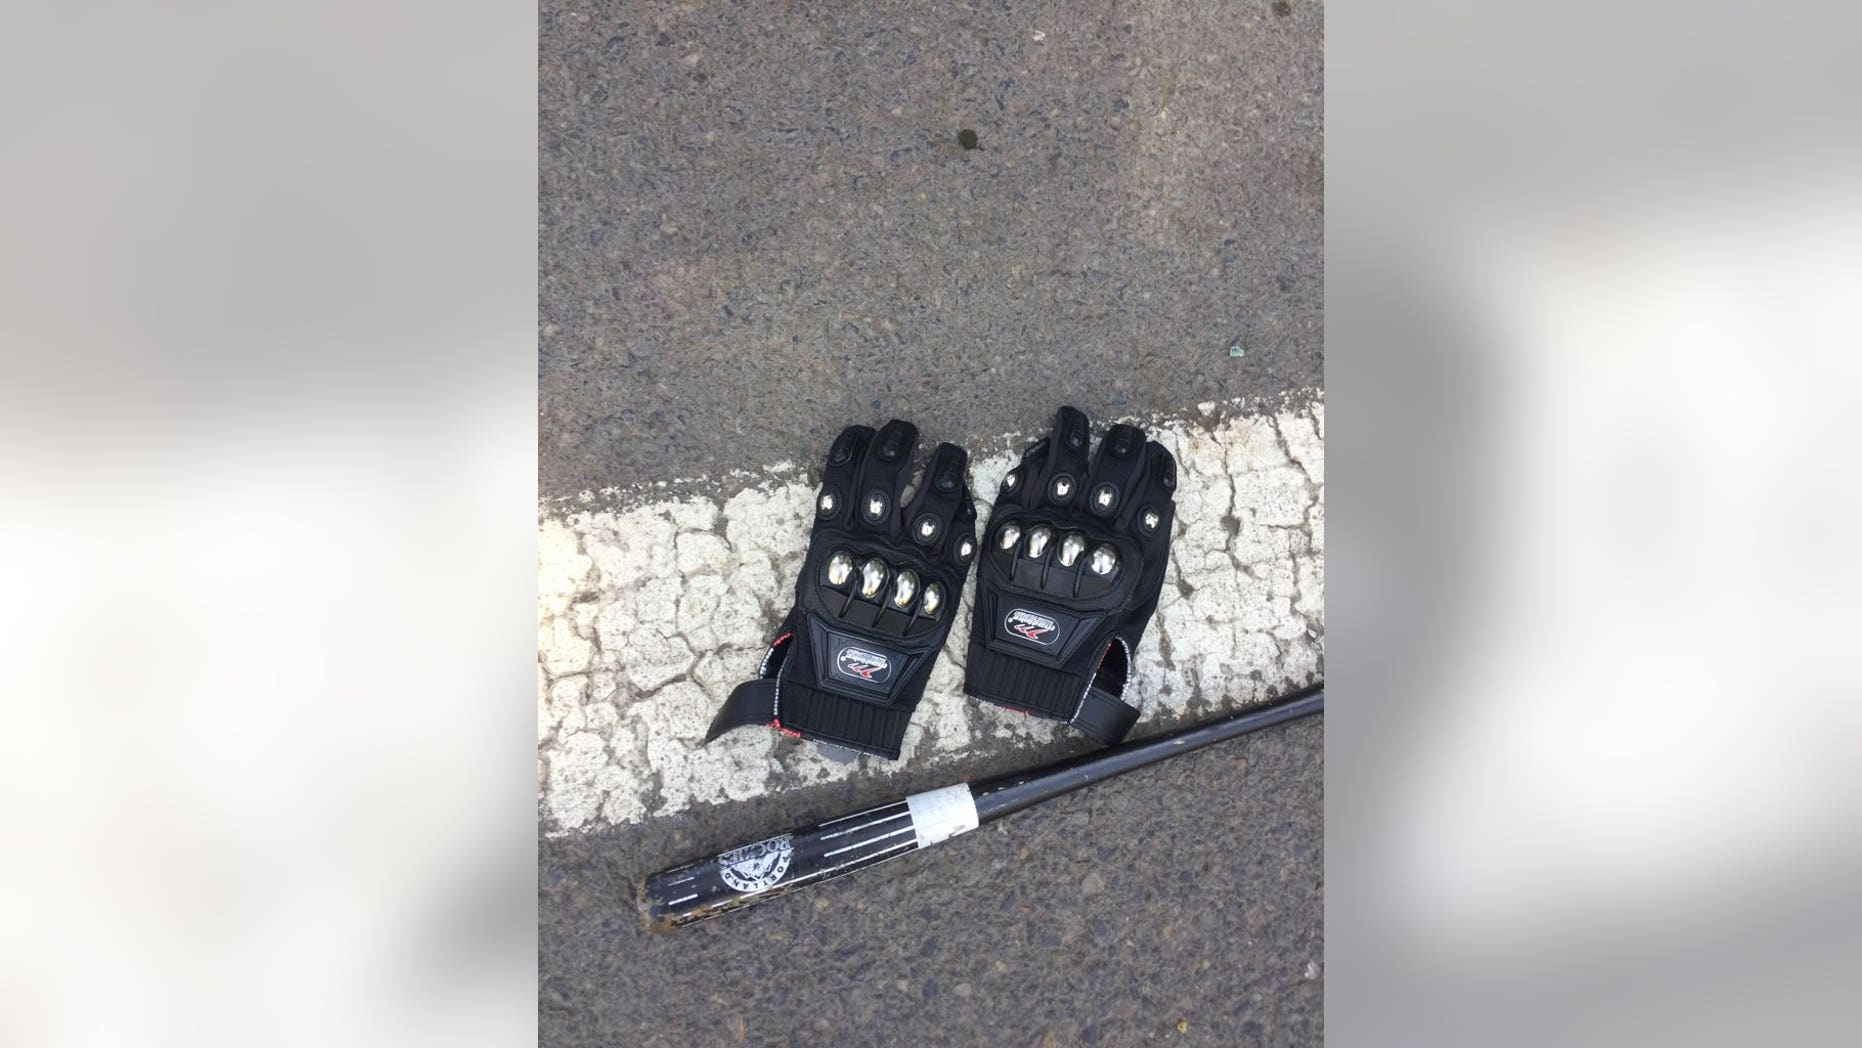 Police confiscated items such as gloves and a bat before allowing demonstrators to rally in Portland Sunday.